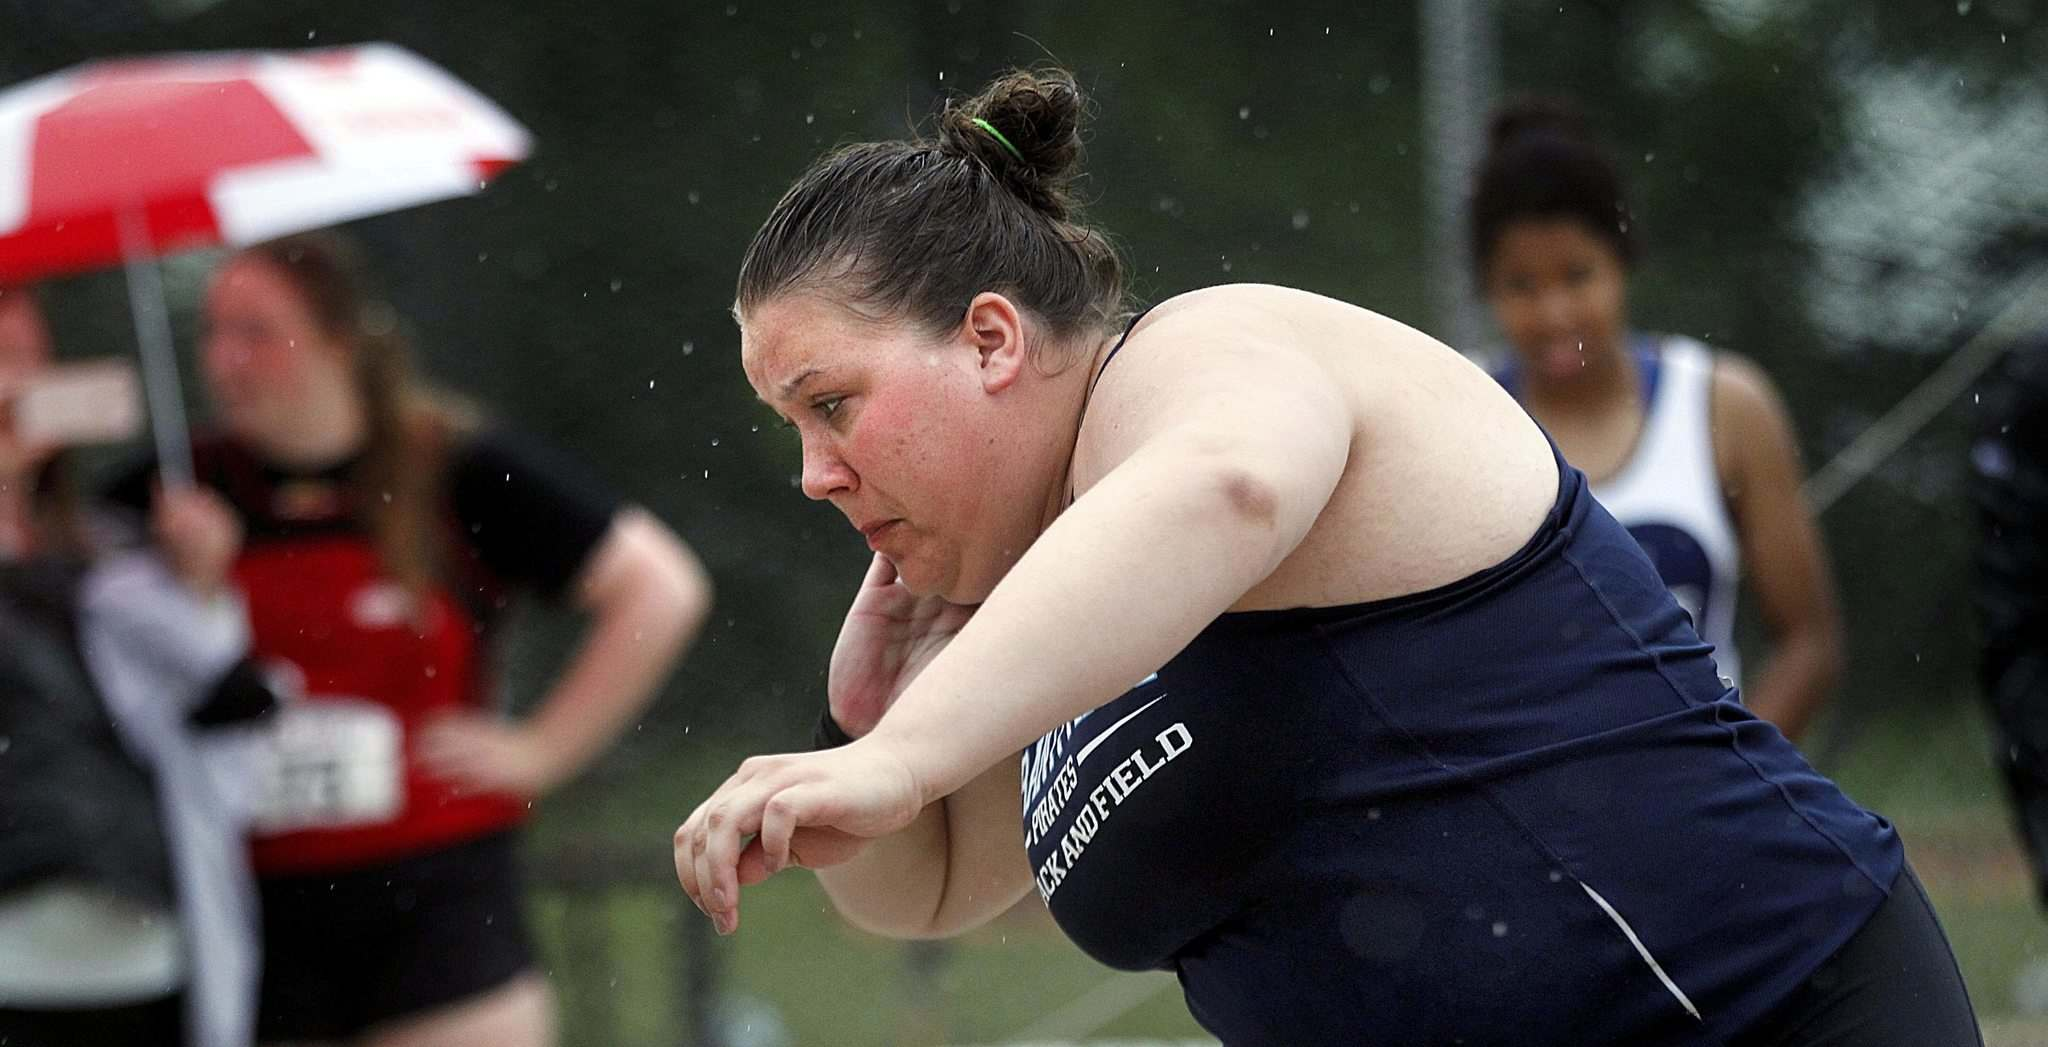 PHIL HOSSACK / WINNIPEG FREE PRESS</p><p>Taylor Heald didn't let the rain stop her Friday. The Grant Park Pirate tied the provincial high school record in shotput set almost 30 years ago.</p>